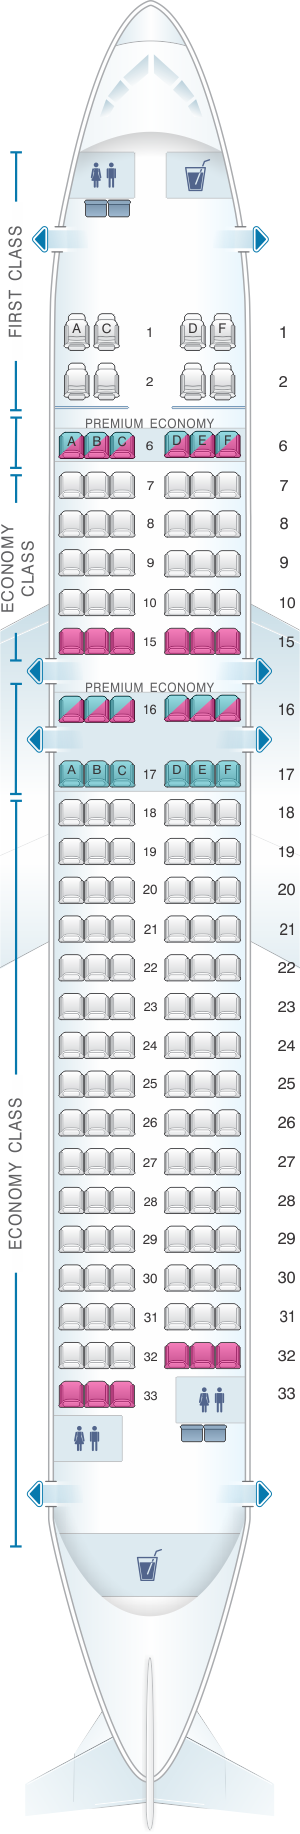 Seat map for Alaska Airlines - Horizon Air Airbus A320 214 sharklet